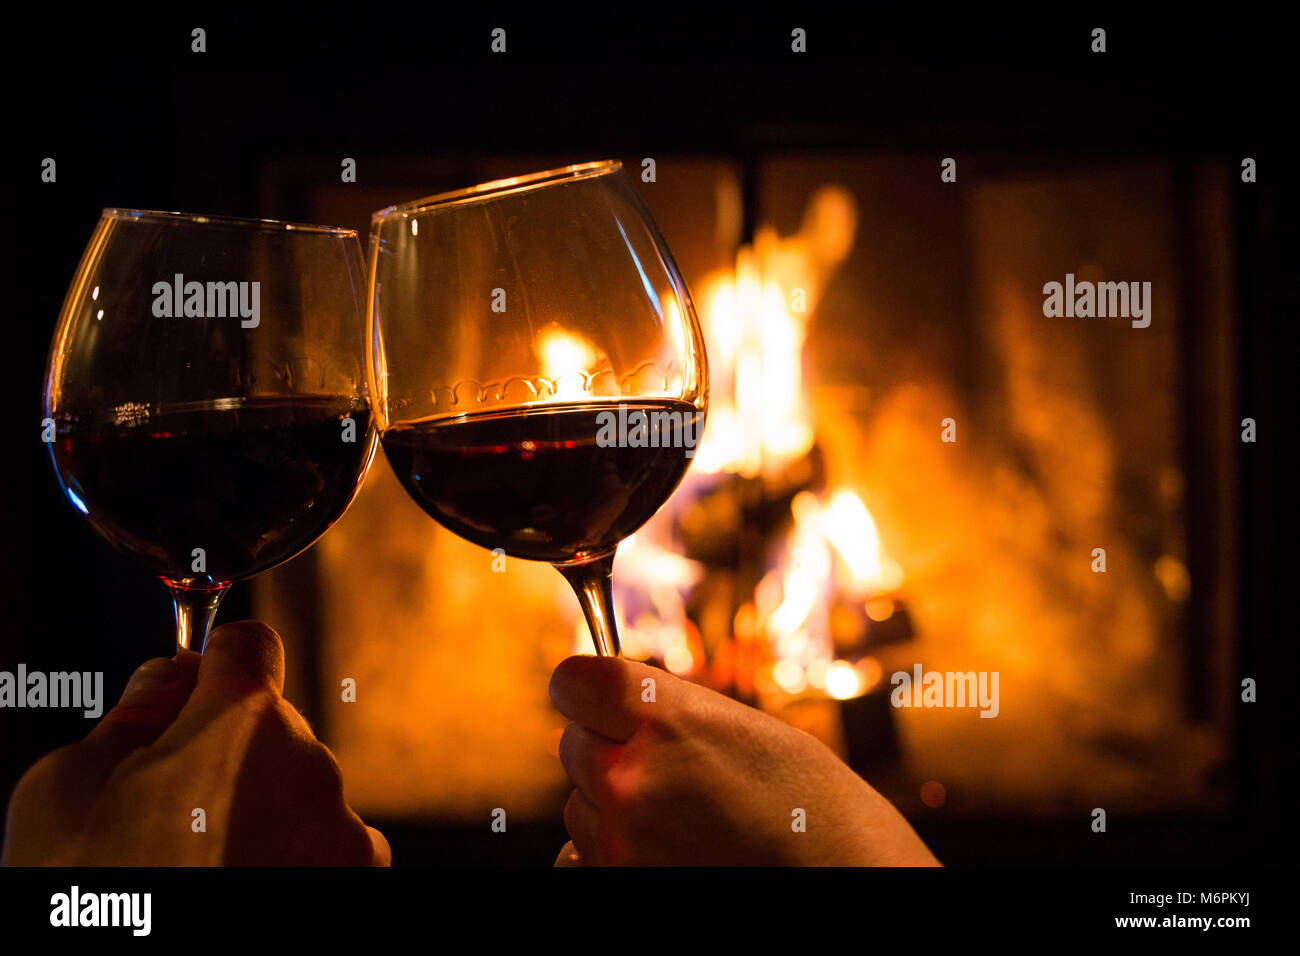 Couple holding pair of glasses with wine at fire pit close up Stock Photo